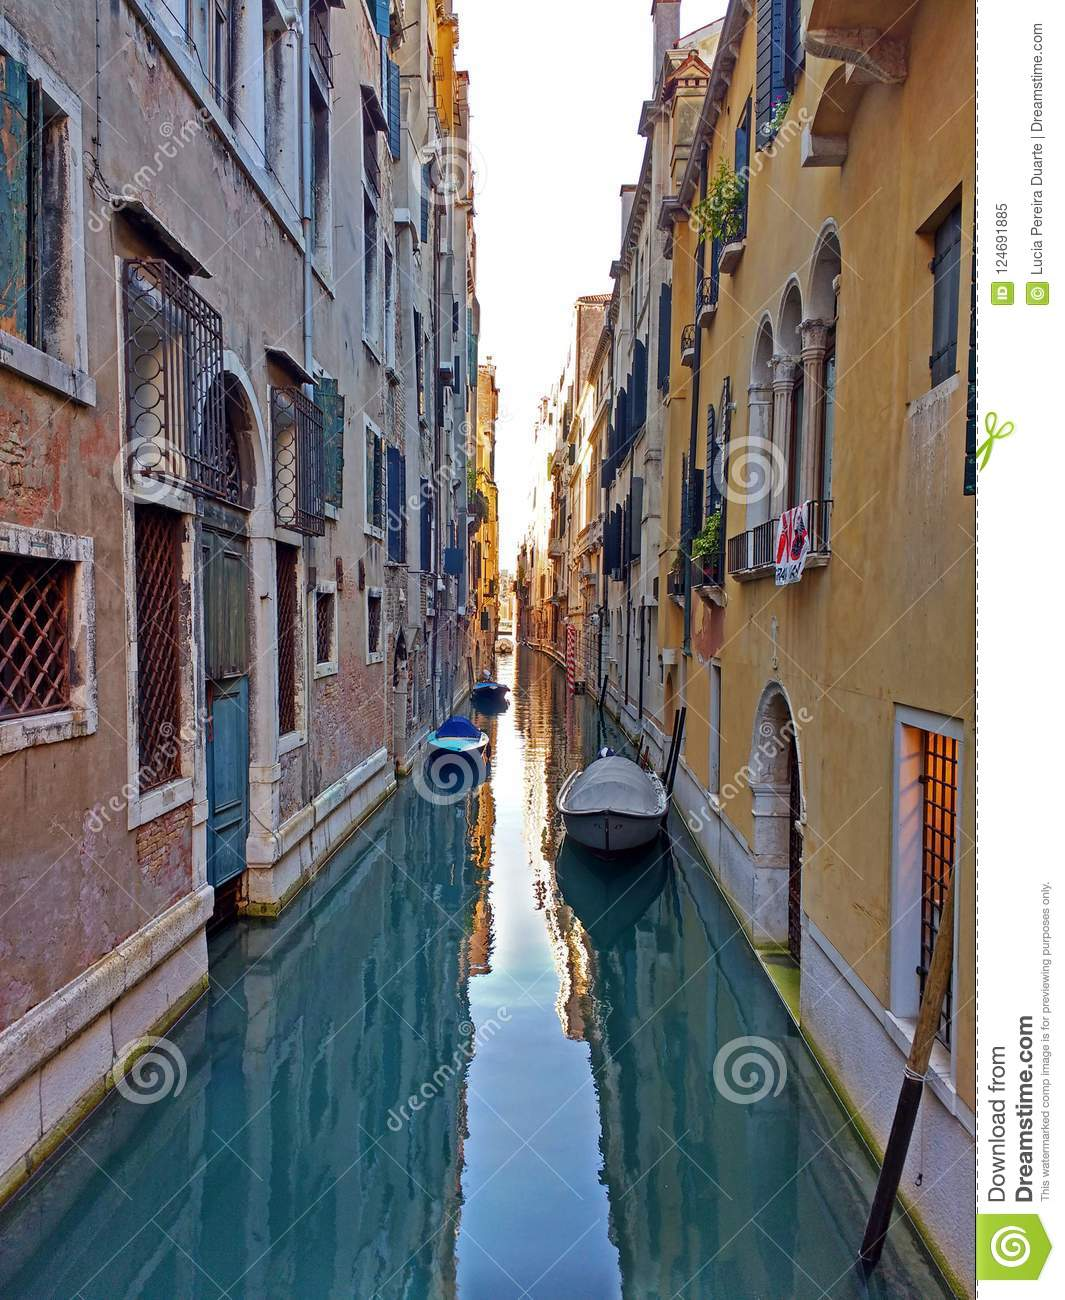 Colours In A Venecian Channel  Stock Image - Image of